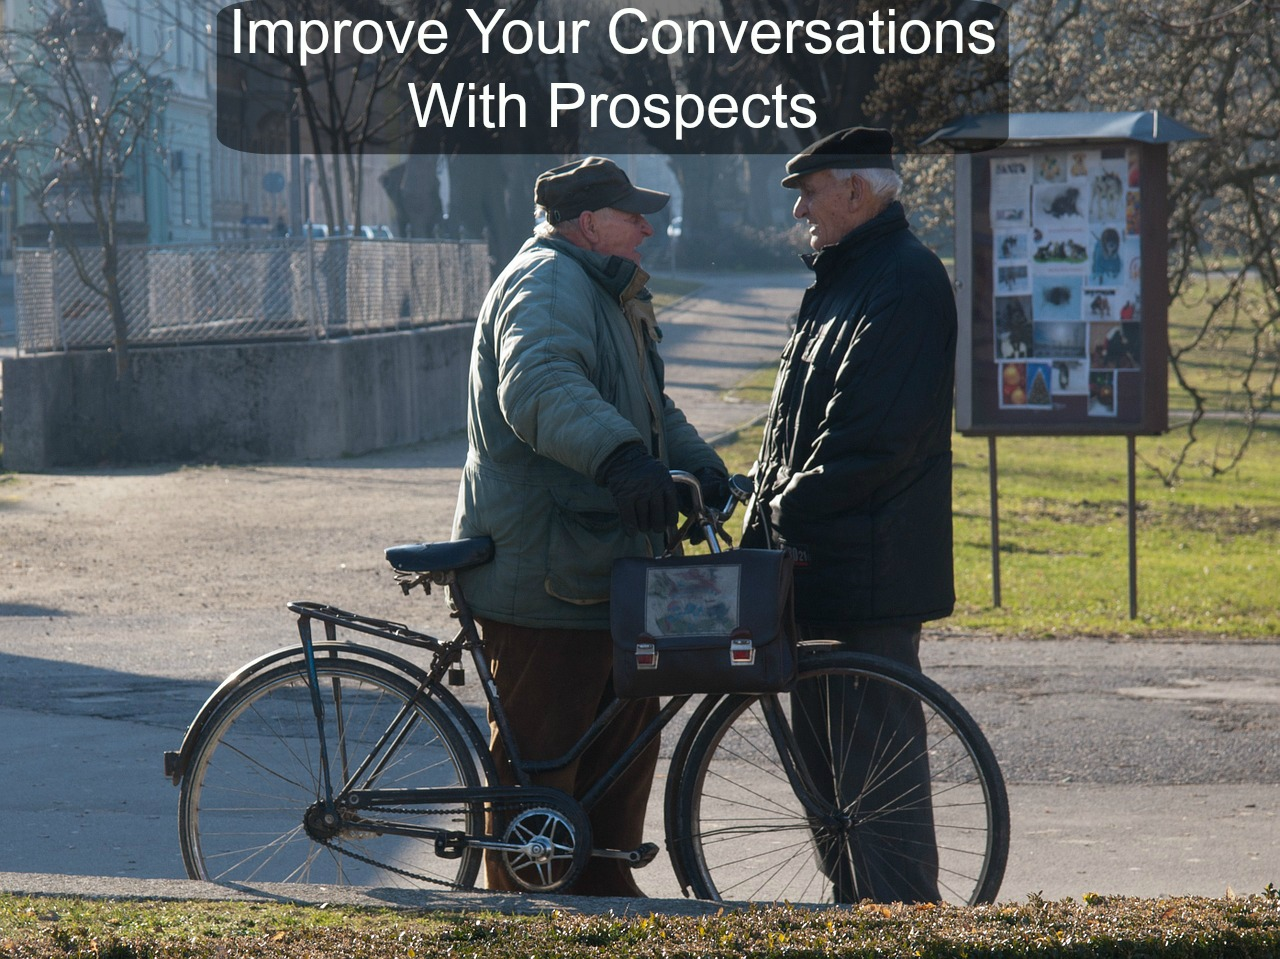 Improve Your Conversations With Network Marketing Prospects